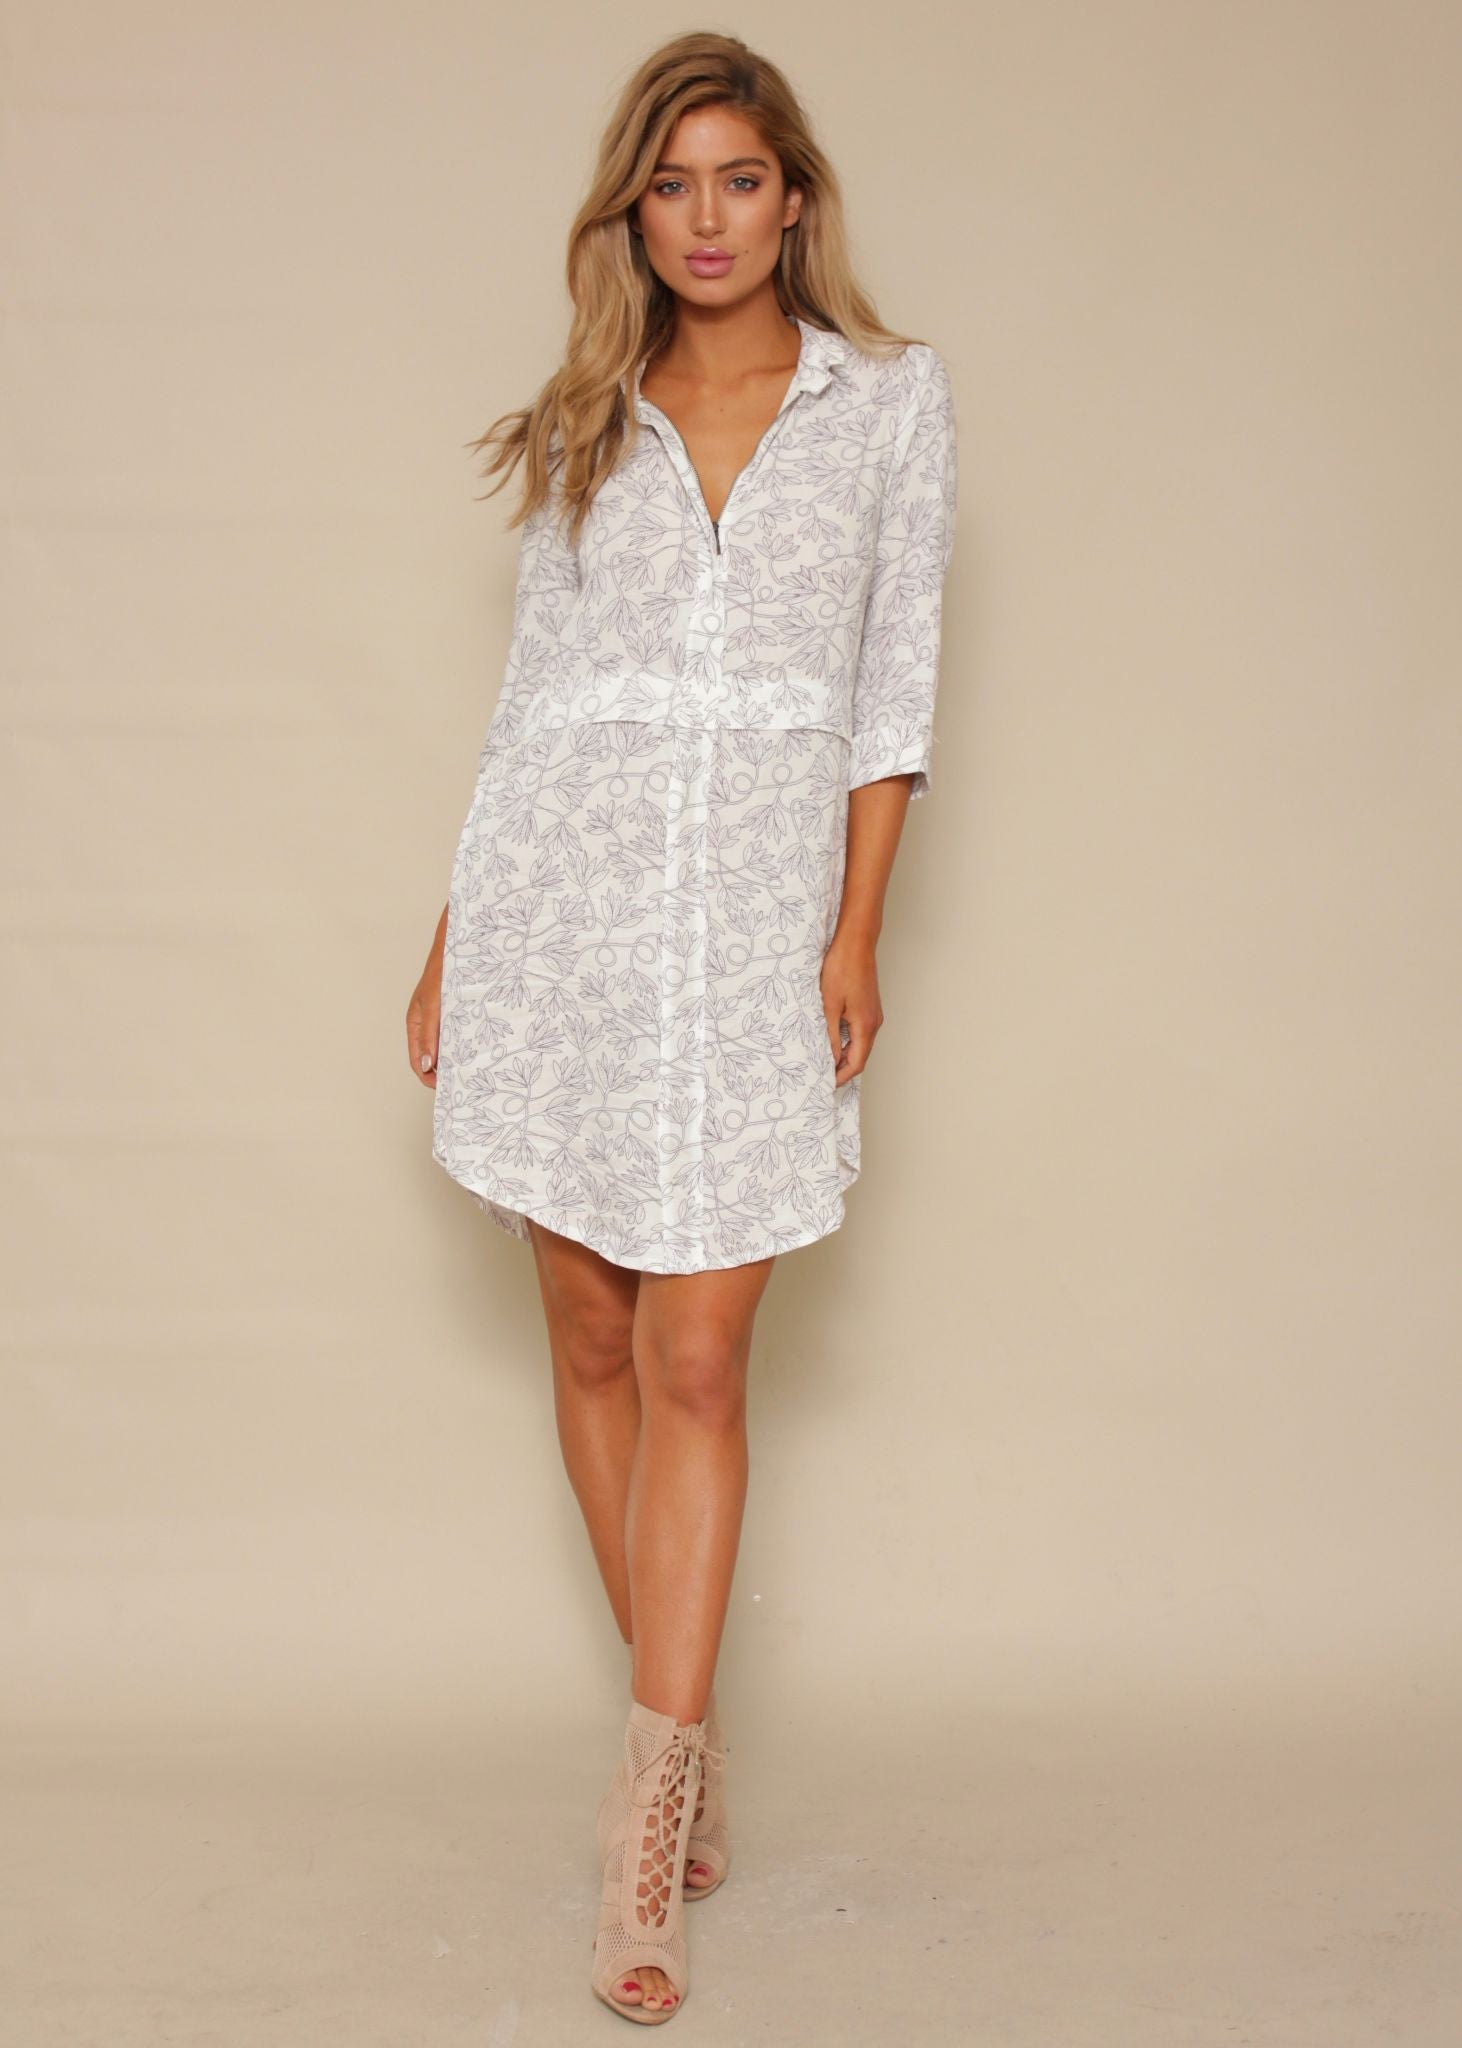 Brixton Zip Shirt Dress - White Vine